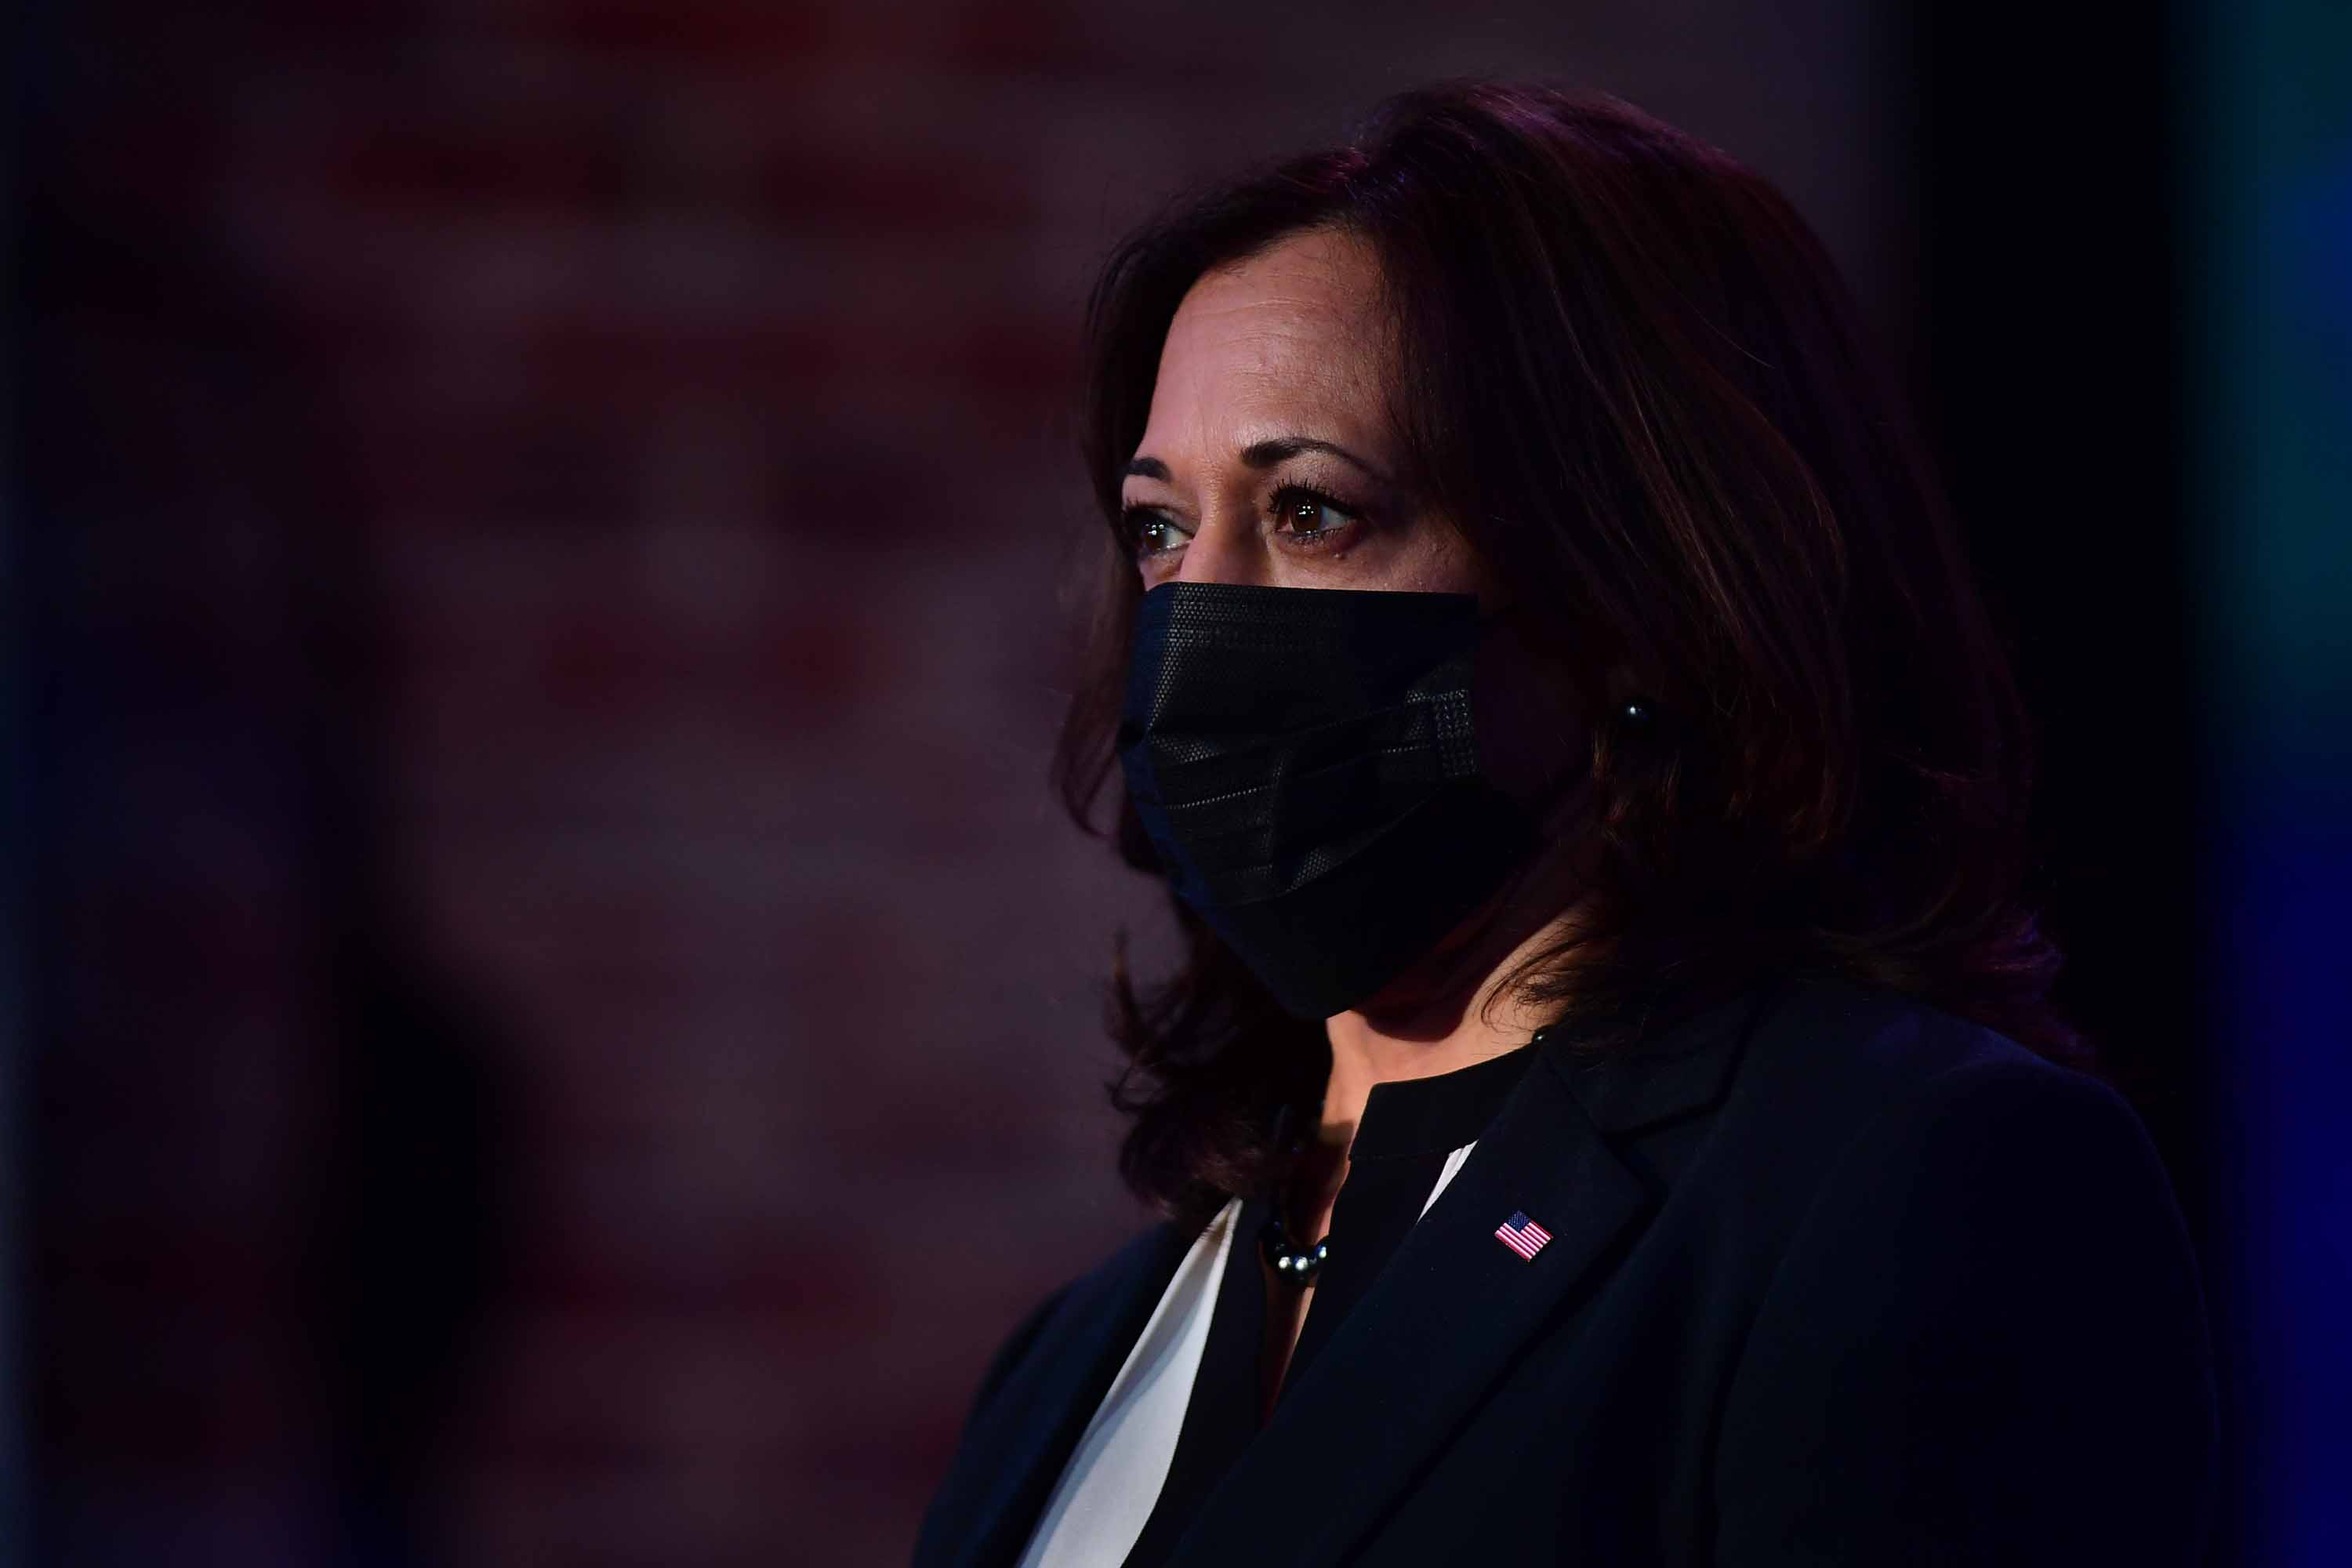 Vice President-elect Kamala Harris listens as President-elect Joe Biden delivers remarks at the Queen Theater in Wilmington, Delaware, on December 28.